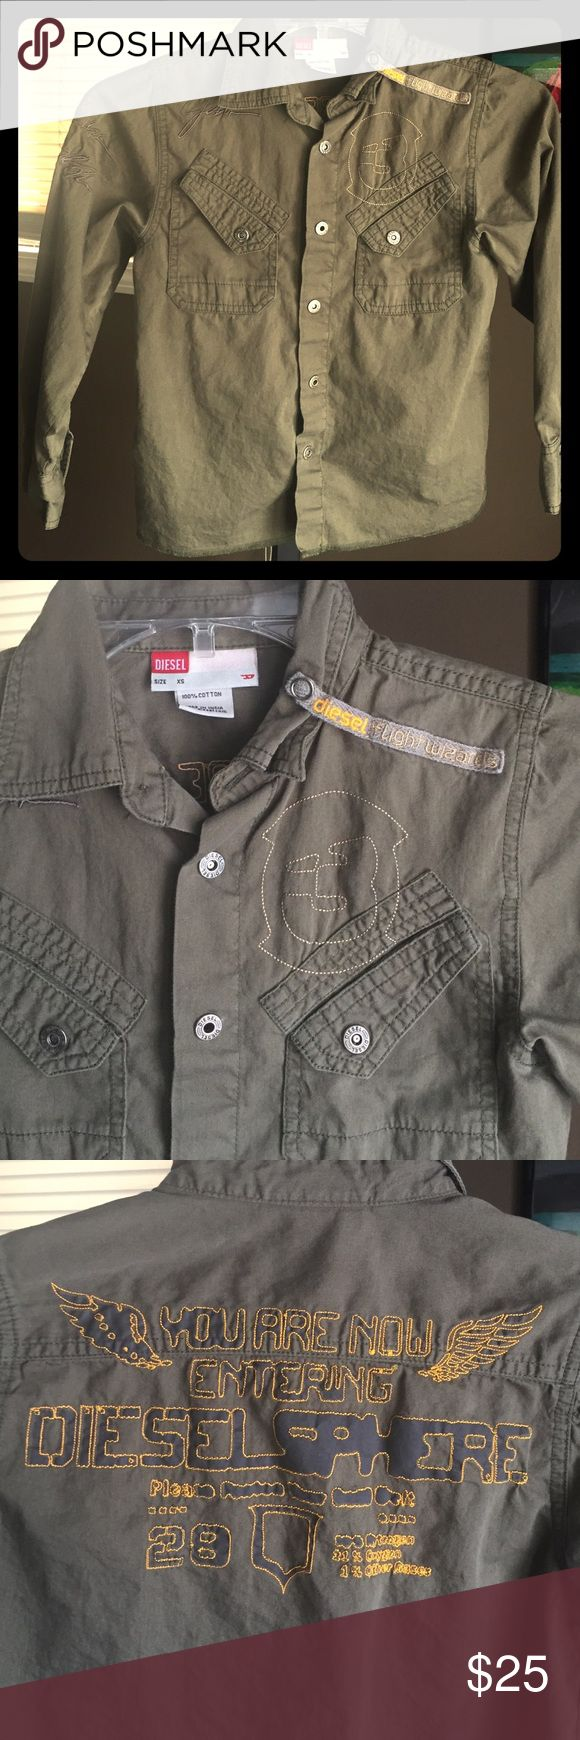 Diesel Snap up Work shirt L/S Tons of cute details. Very good condition. Can fit a slim size small. Army green. Diesel Shirts & Tops Button Down Shirts